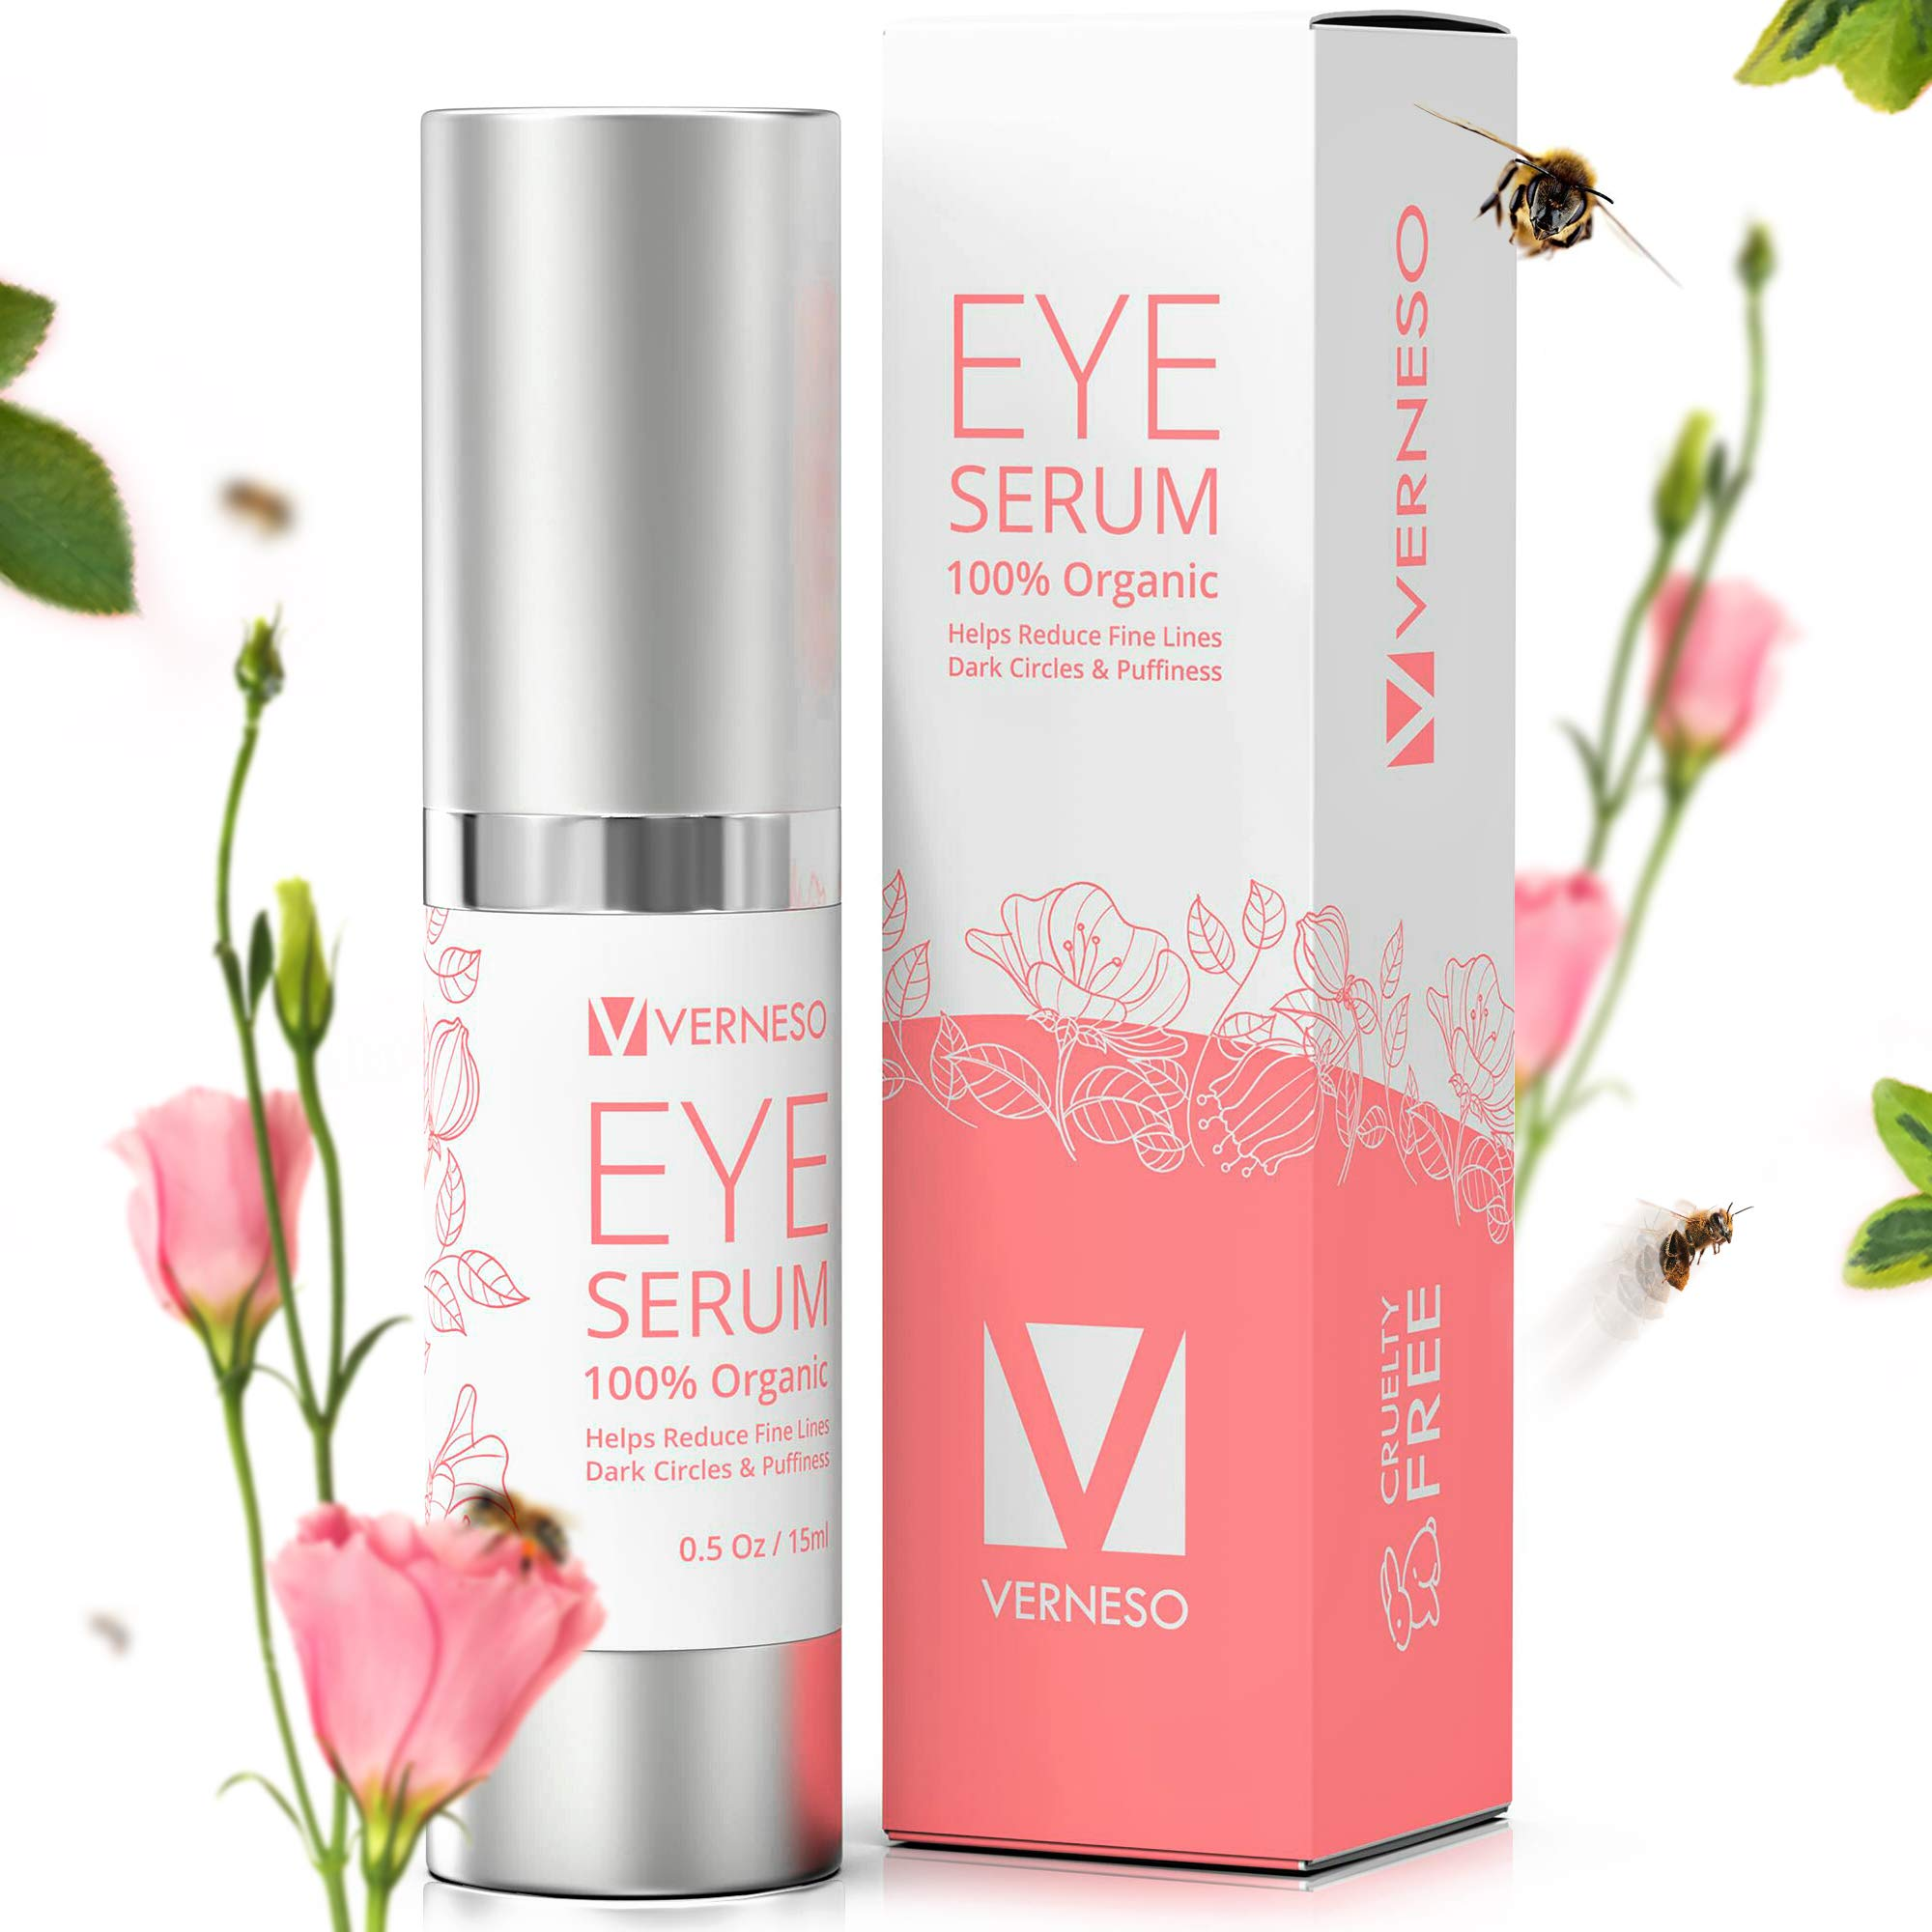 Best Eye Serum with BEE VENOM for Wrinkles, Fine Lines, Dark Circles, Puffiness & Bags - With Hyaluronic Acid, Peptides & Shea Butter - 100% ORGANIC - Made in USA - Anti Aging Moisturizer Serum by VERNESO